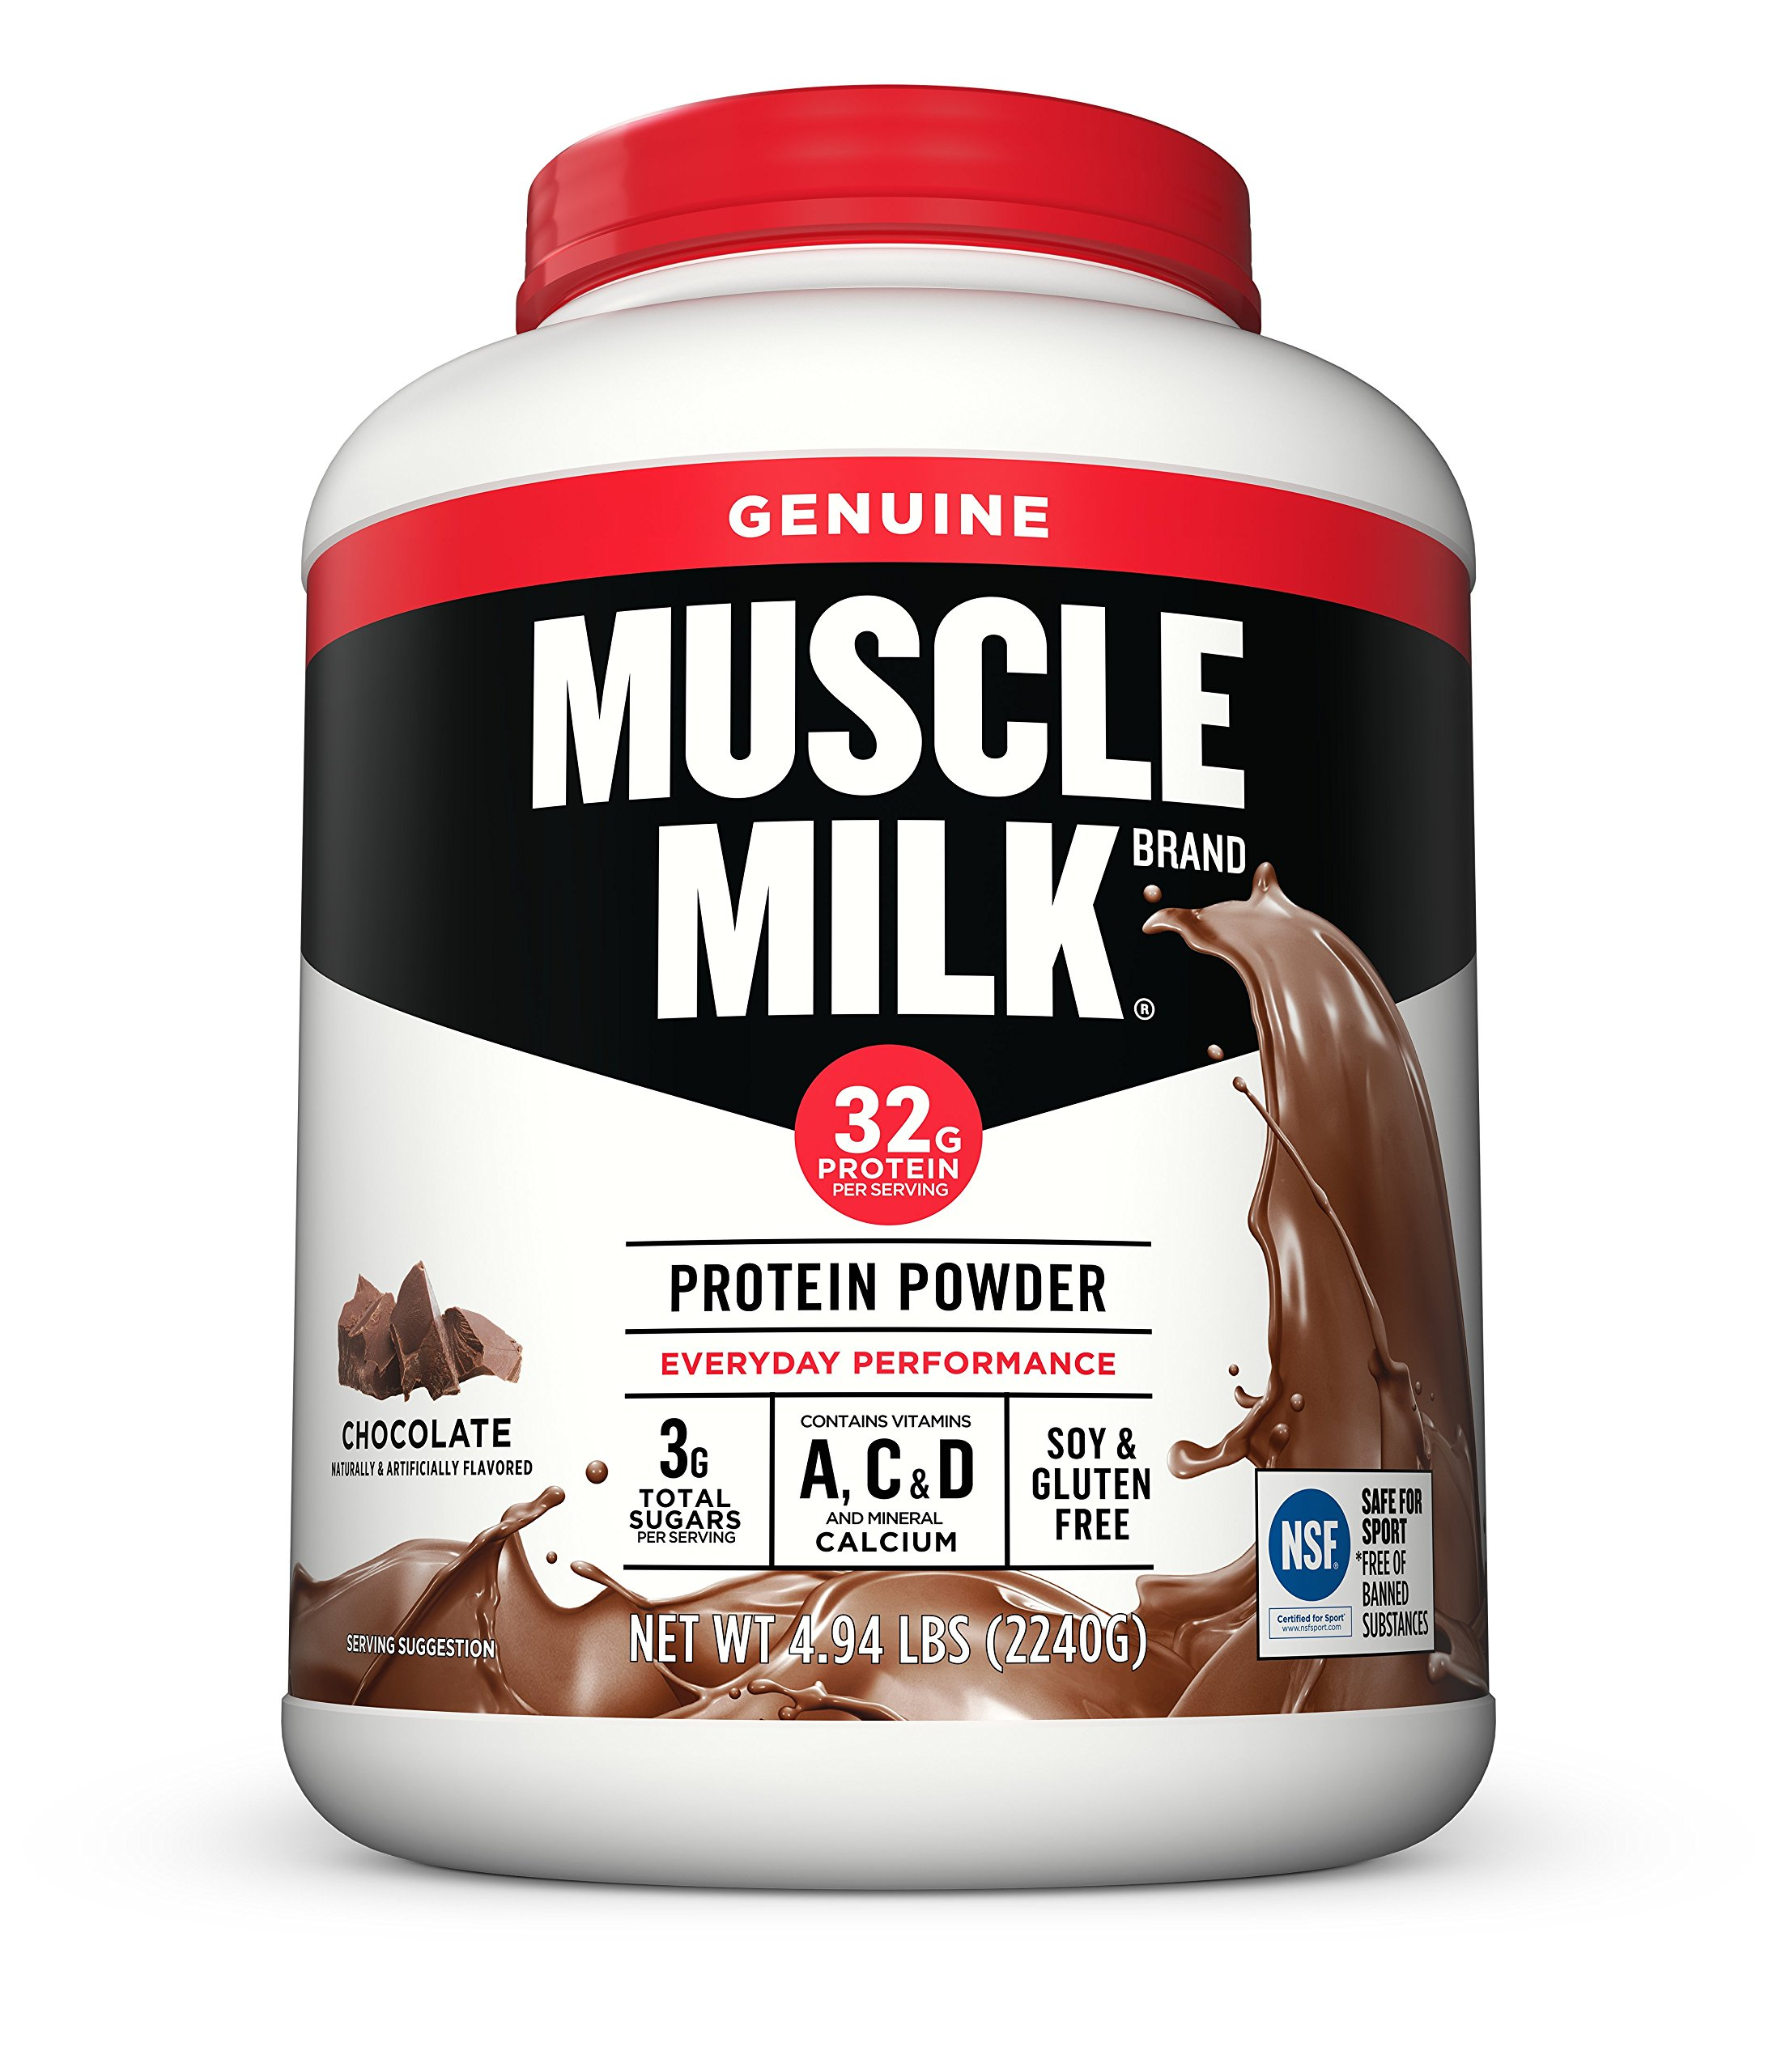 Muscle Milk Genuine Protein Powder, Chocolate, 32g Protein, 4.94 Pound by CytoSport